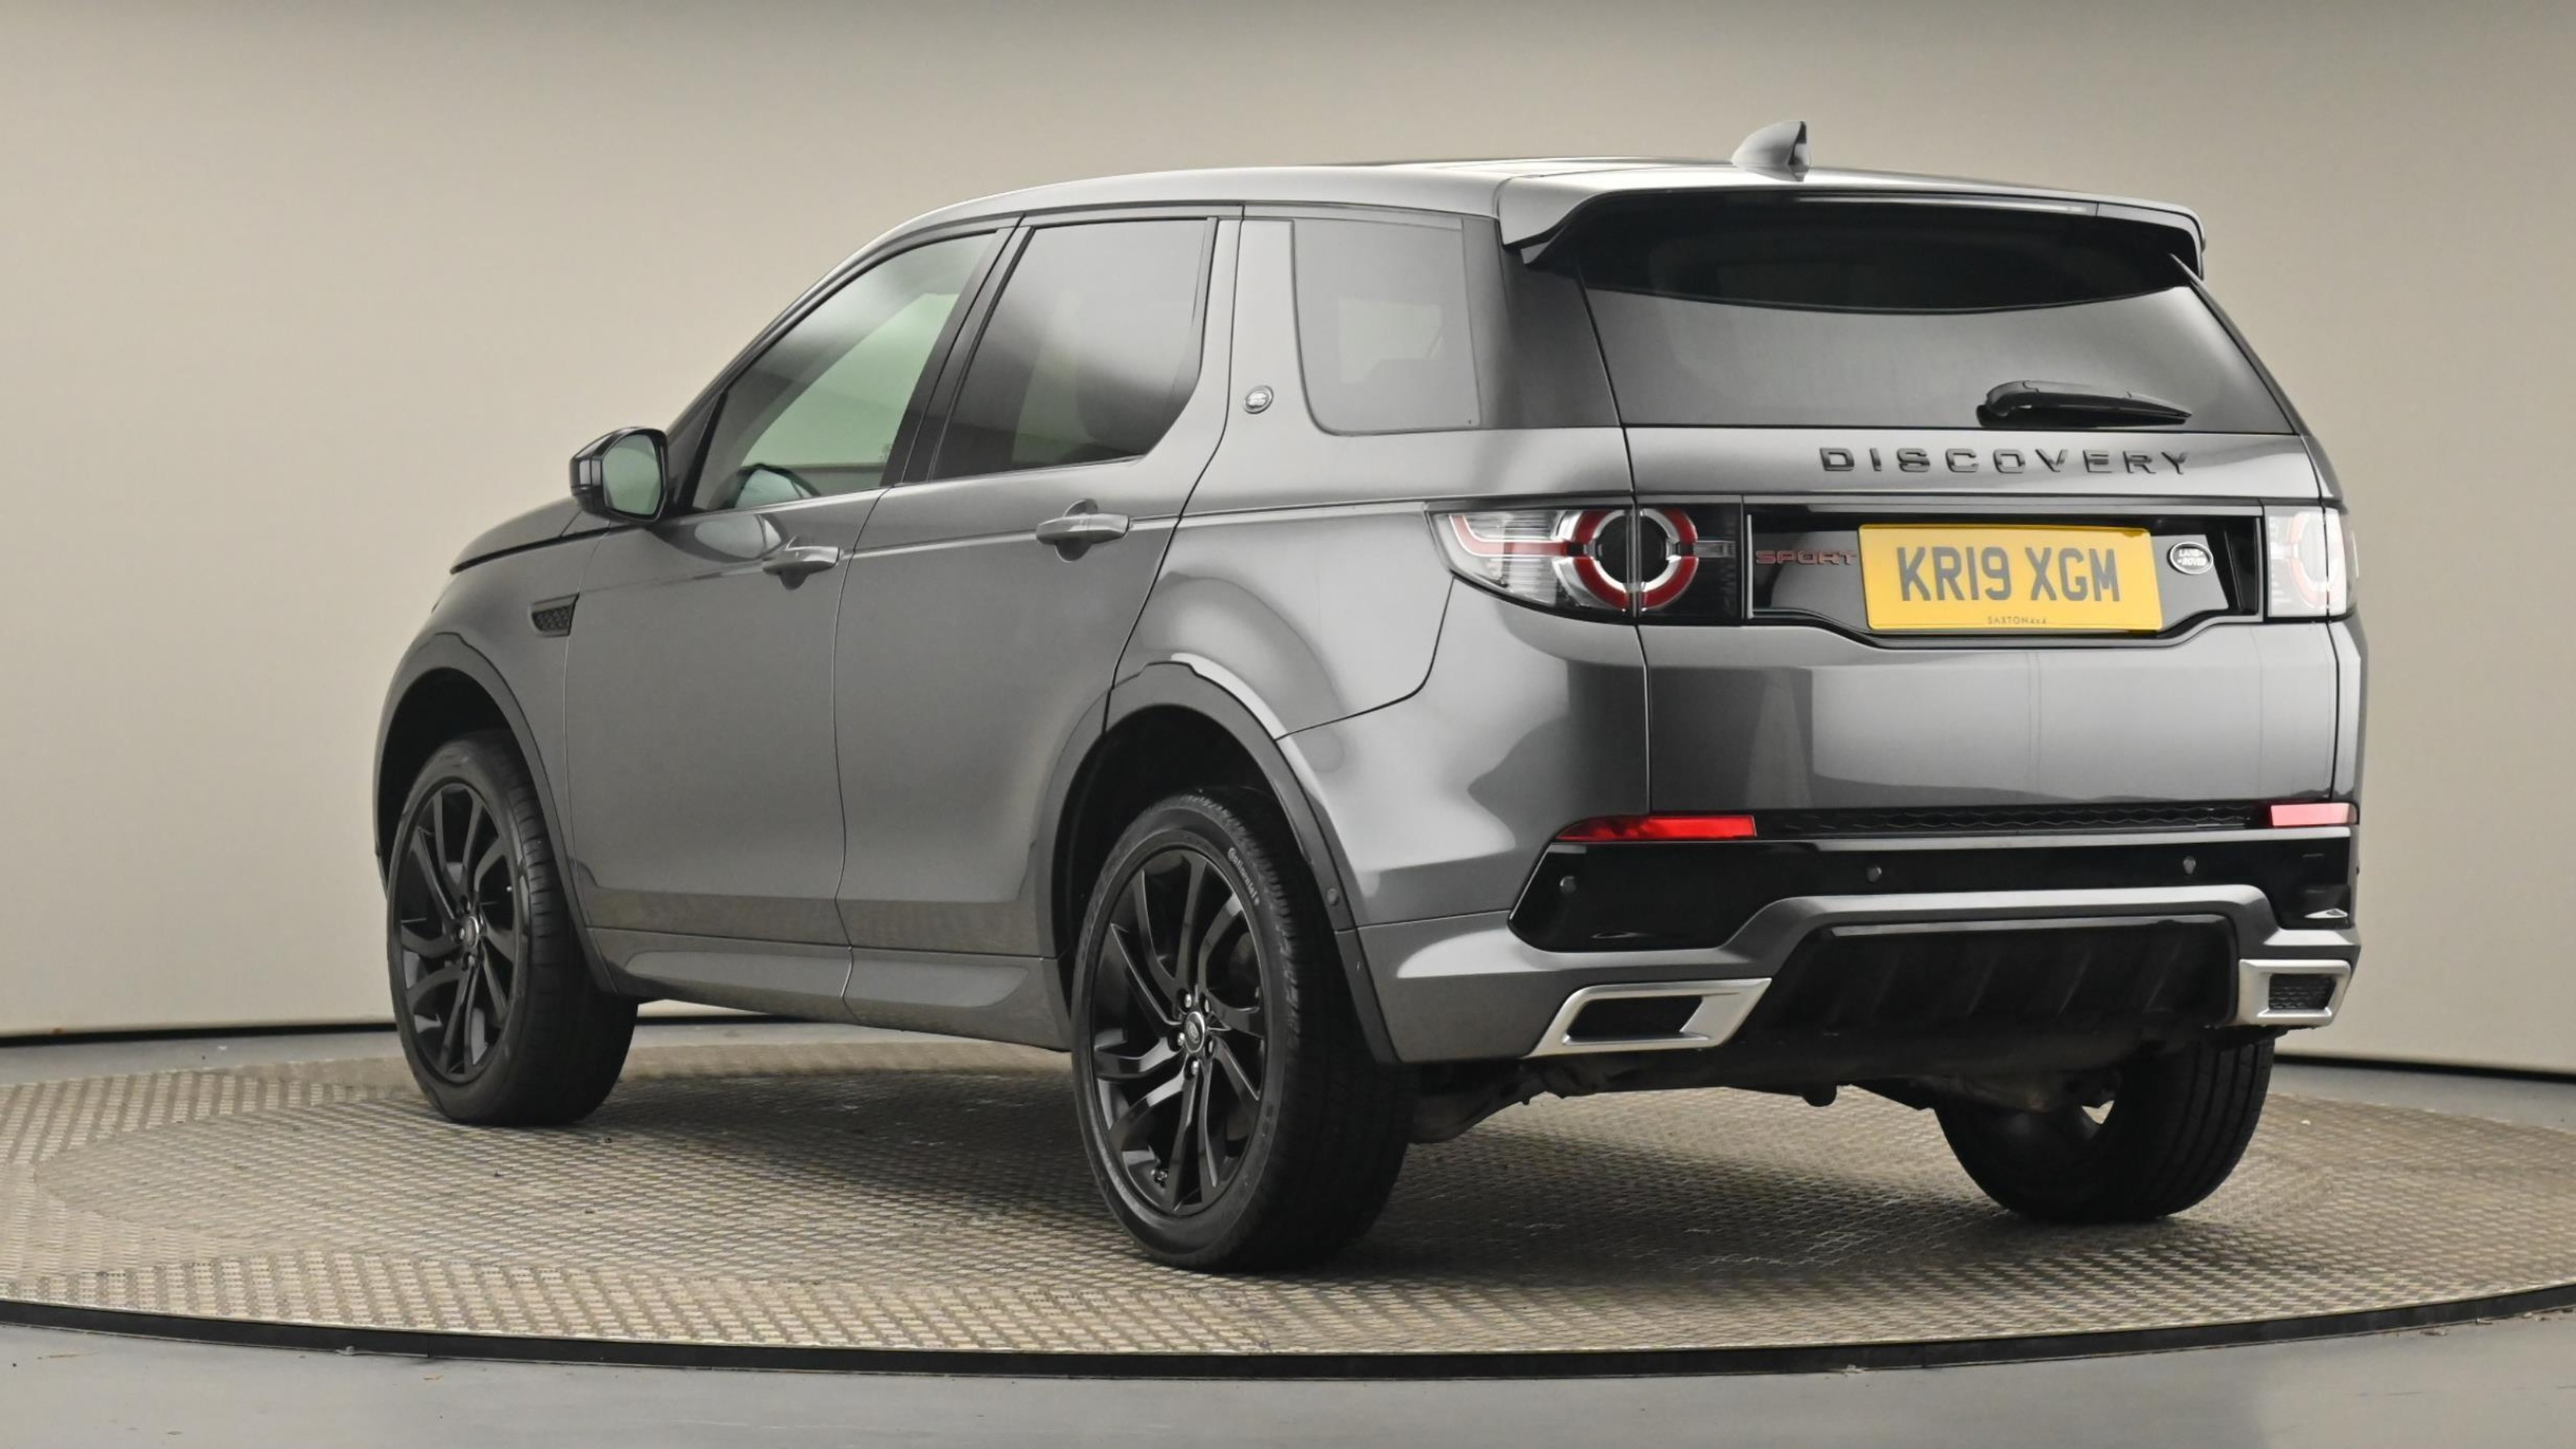 Used 2019 Land Rover DISCOVERY SPORT 2.0 Si4 290 HSE Dynamic Luxury 5dr Auto [5 Seat] GREY at Saxton4x4